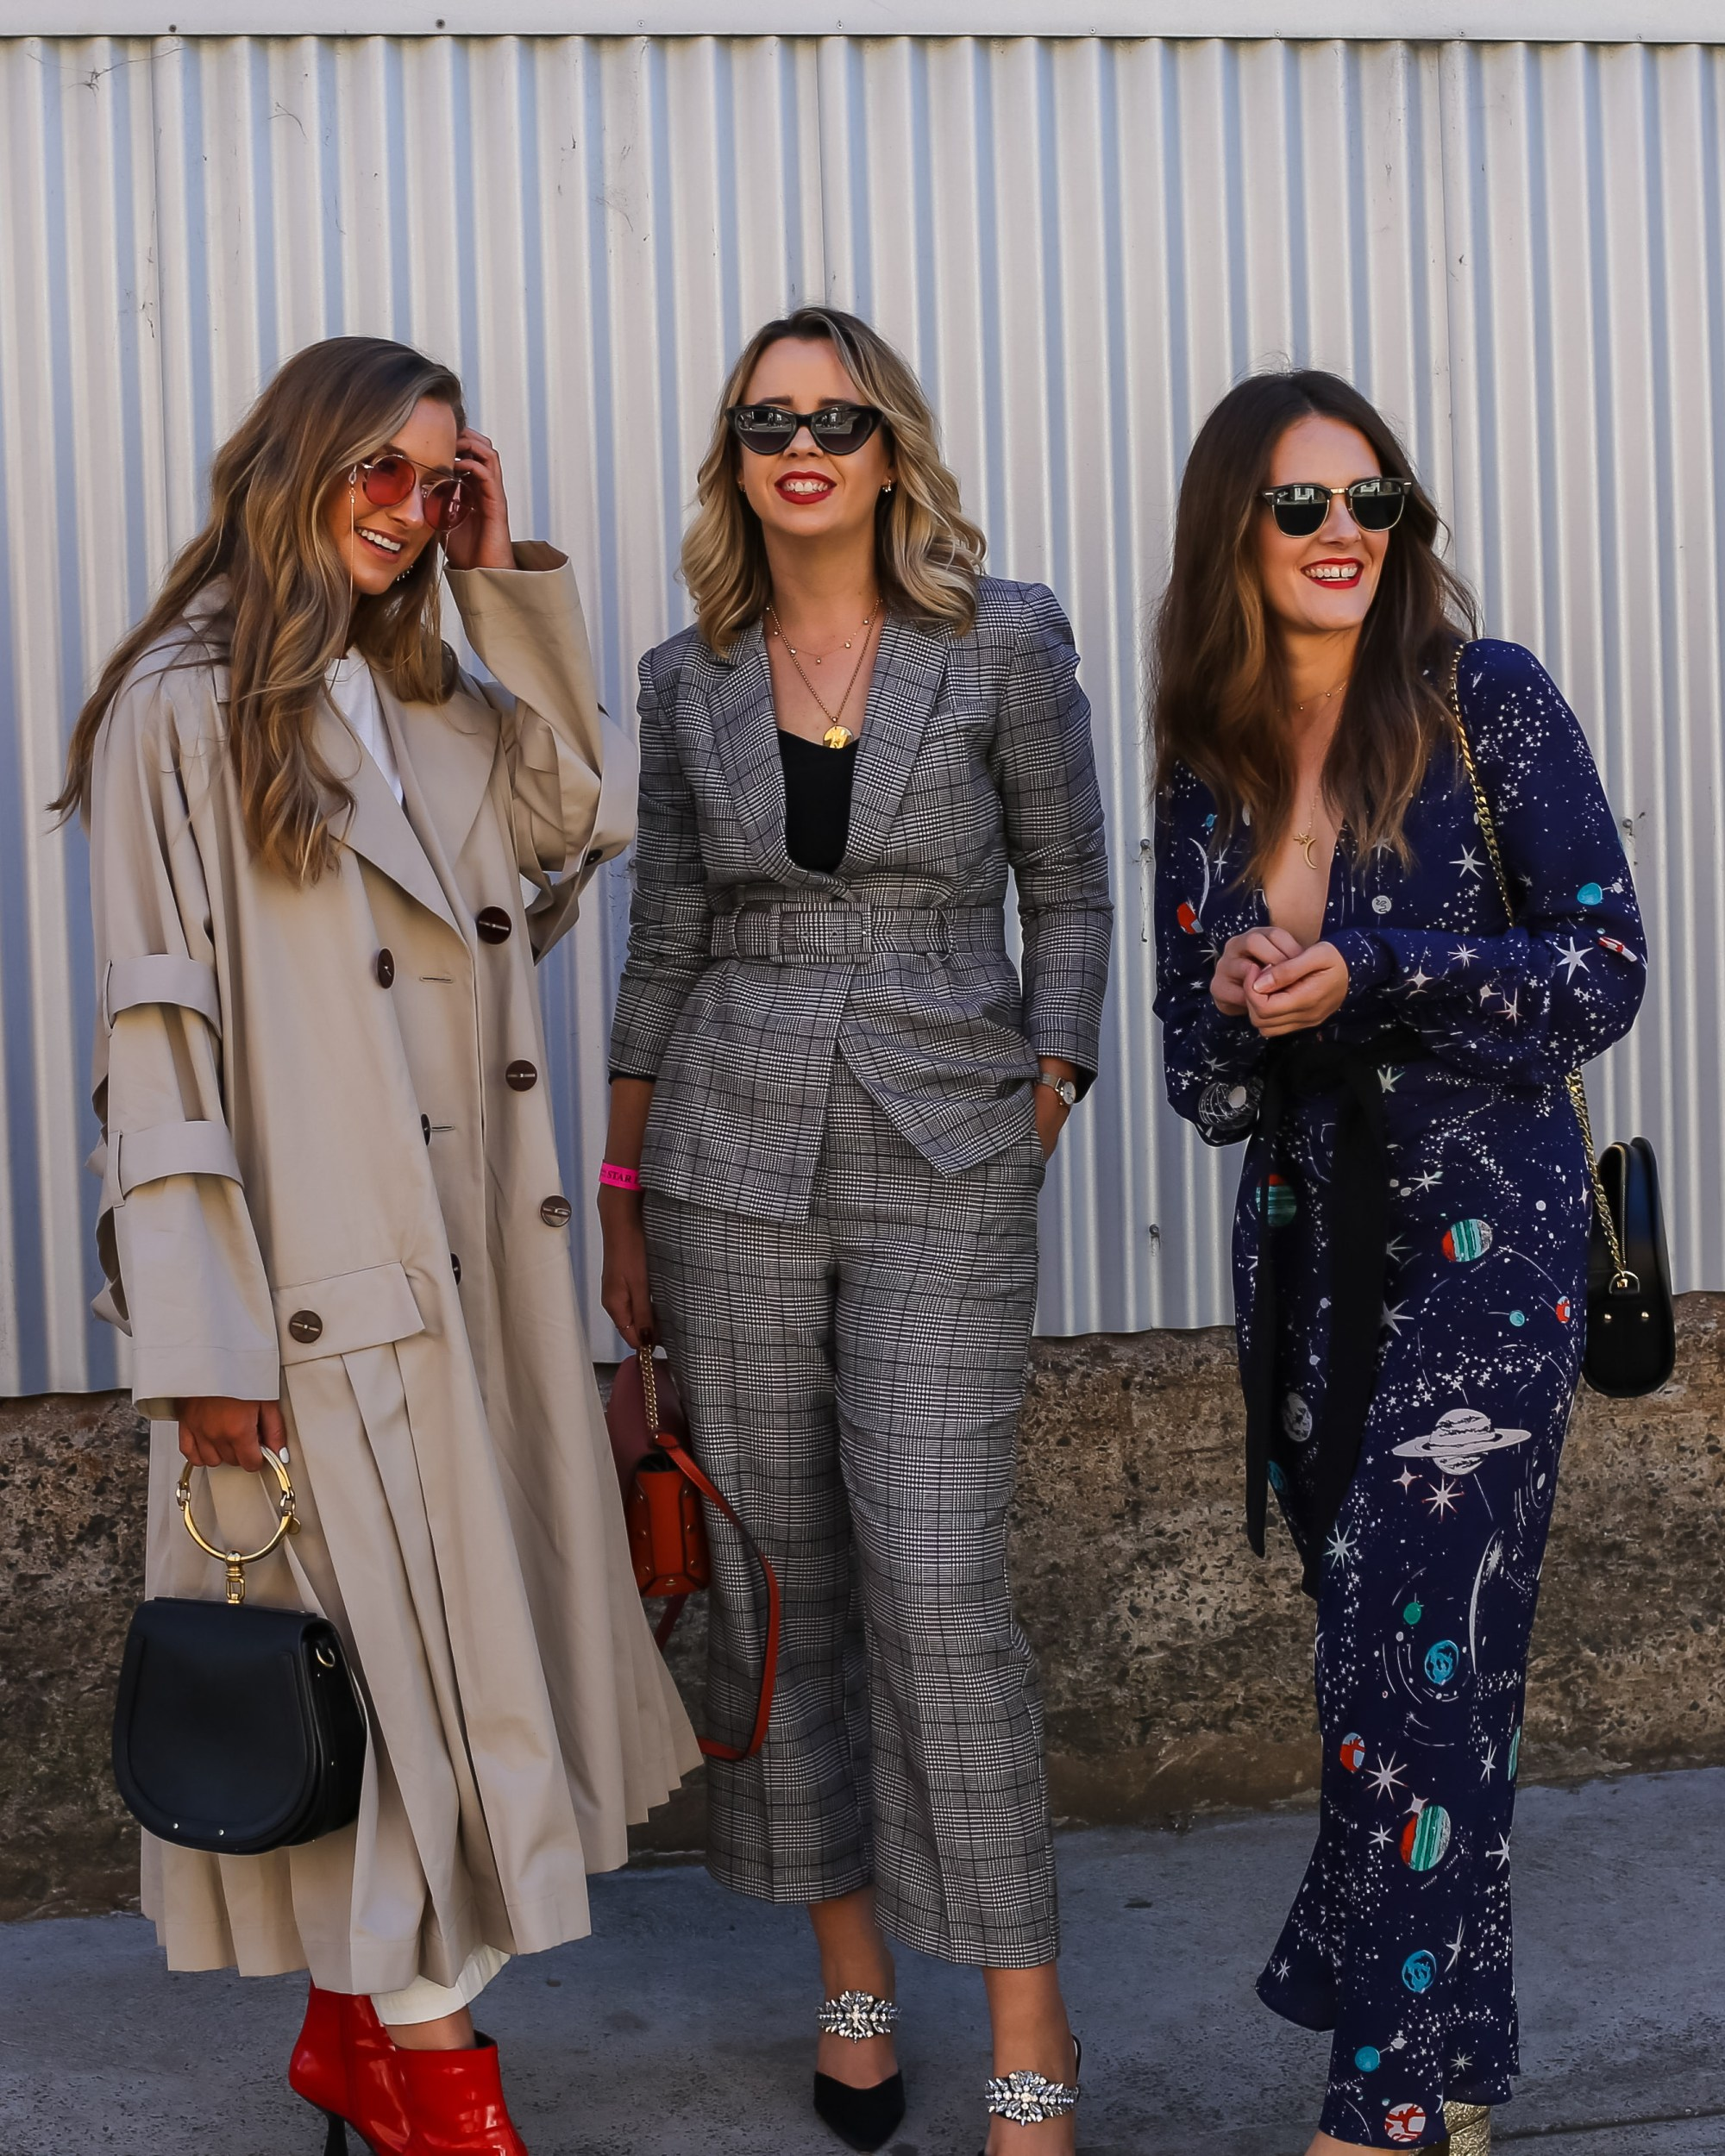 Fashion bloggers Kirsten Anderton, Rachel James and Jenelle Witty from Inspiring Wit Blog at MBFWA 2018 with Dyson Hair wearing Rixo London, A.P.C and Gucci